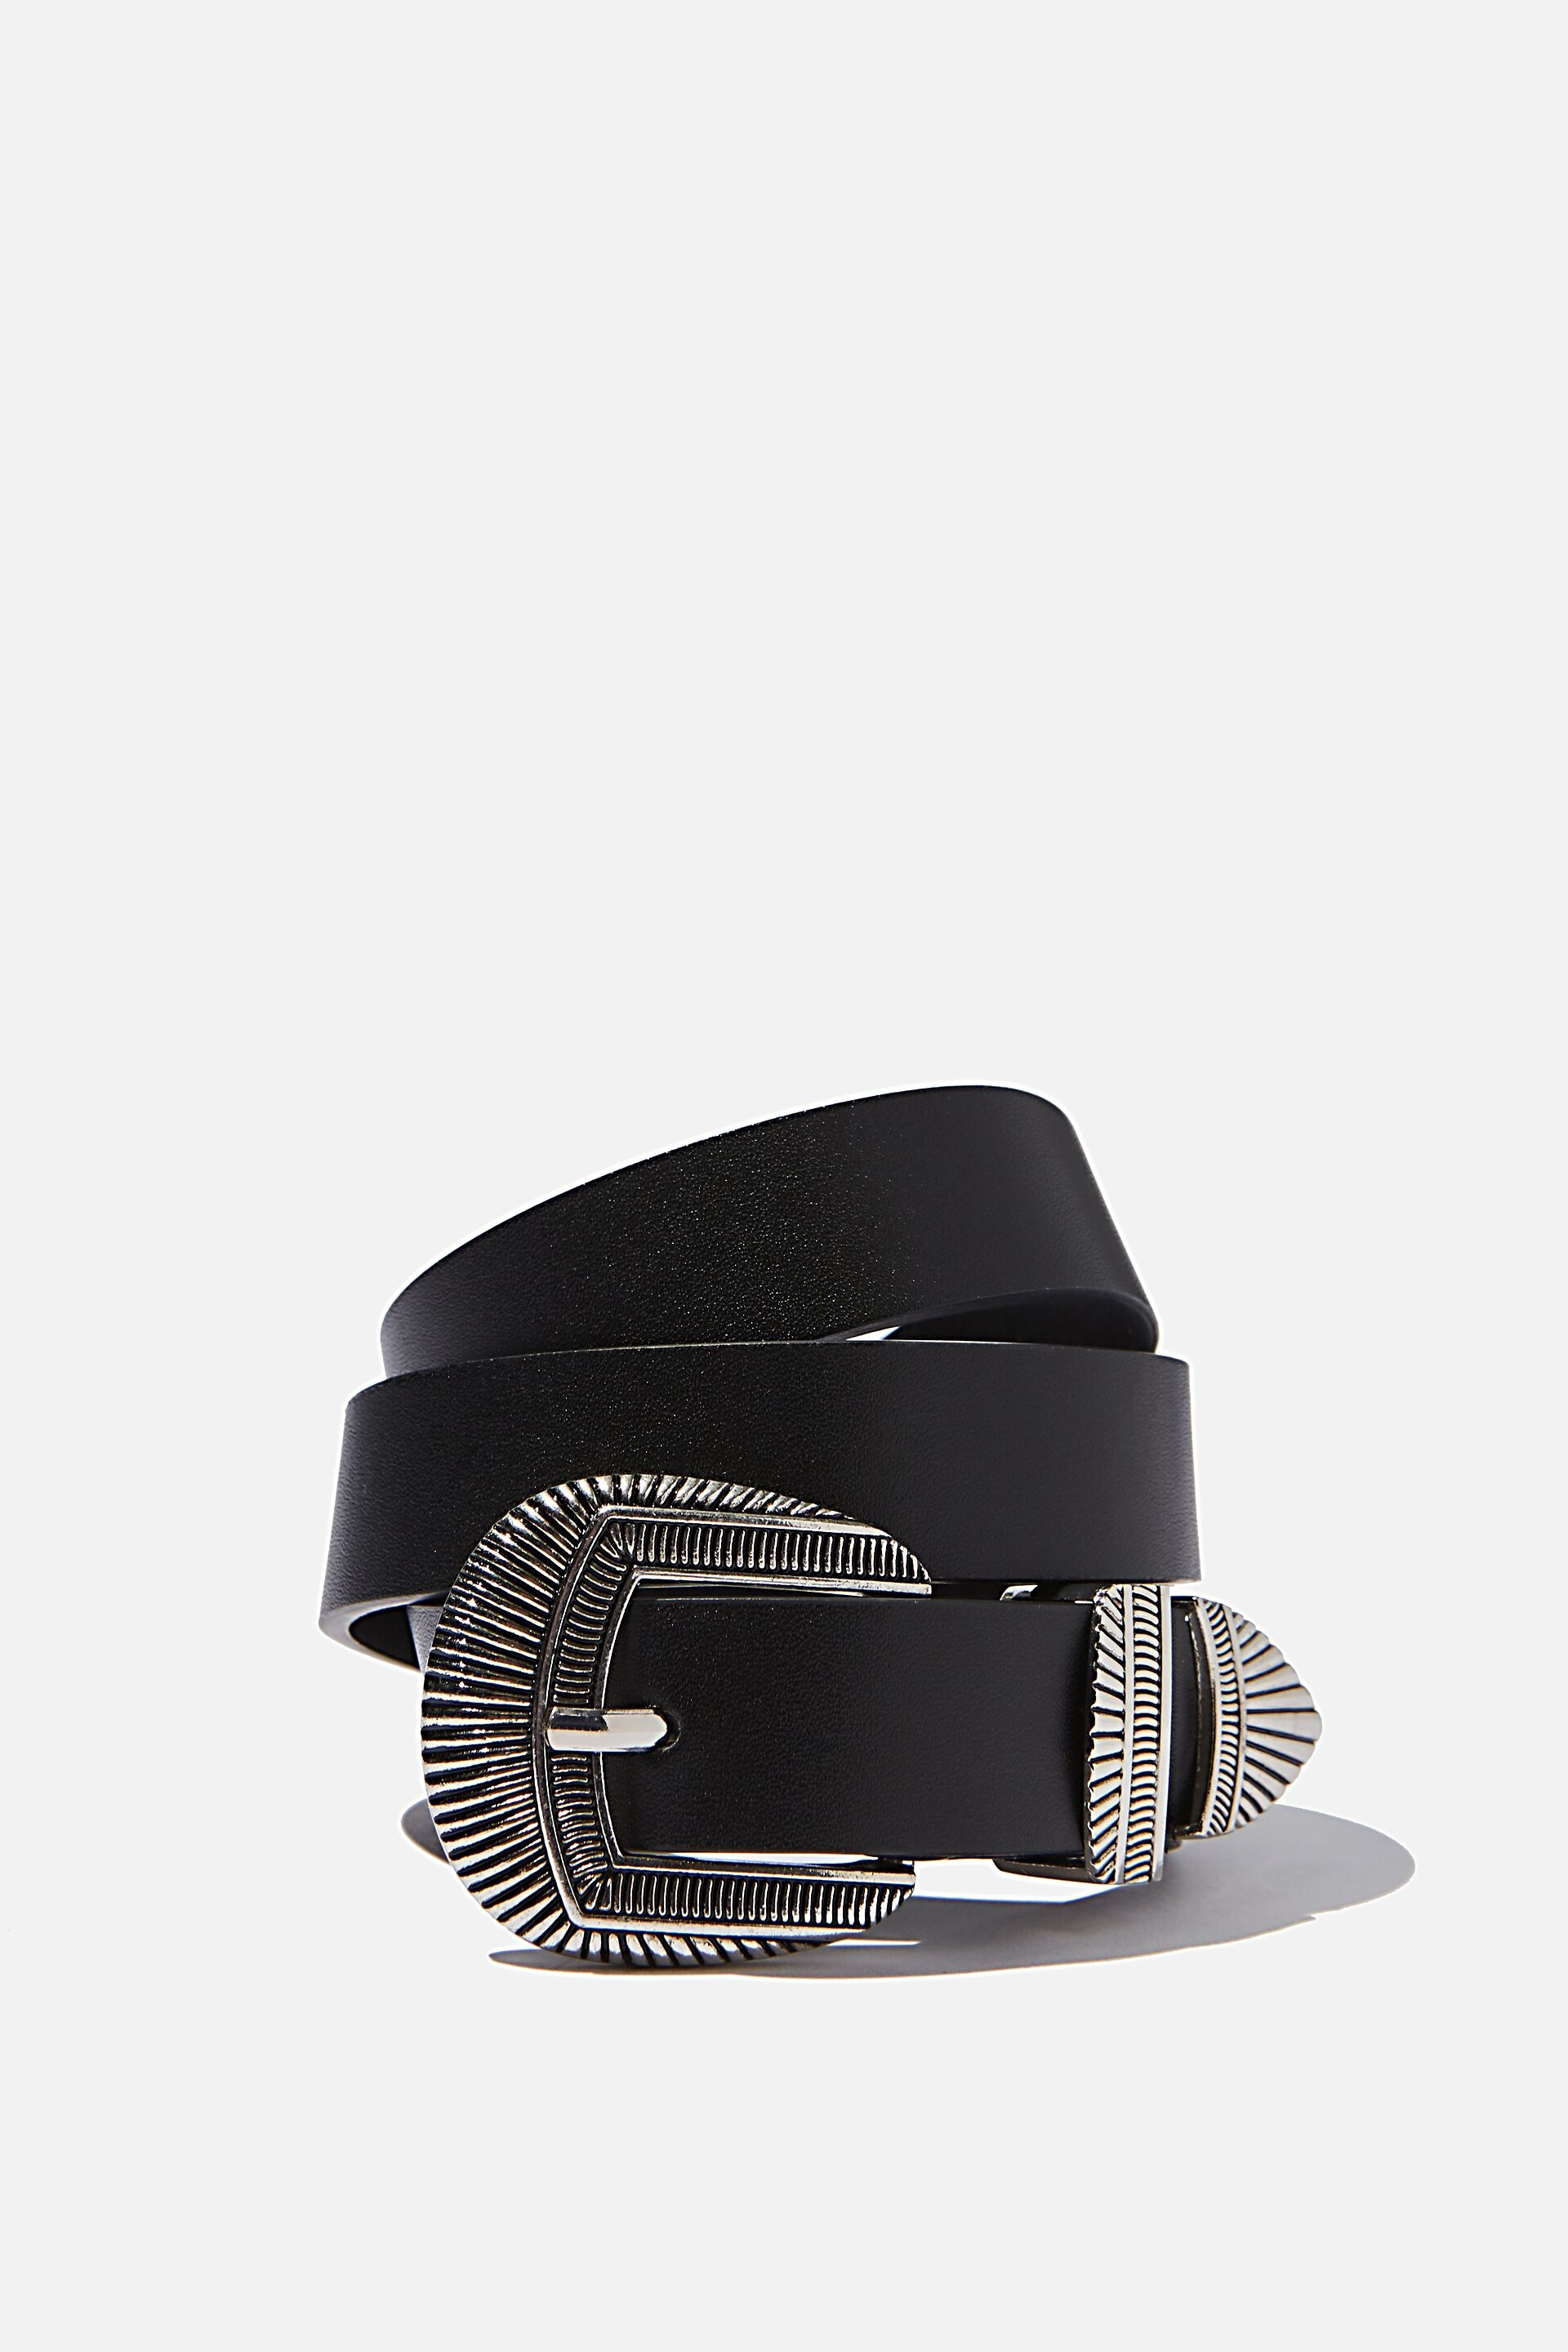 Fancy Dress Material Accessory Black /& Silver Pull On Shoe Fabric Buckles